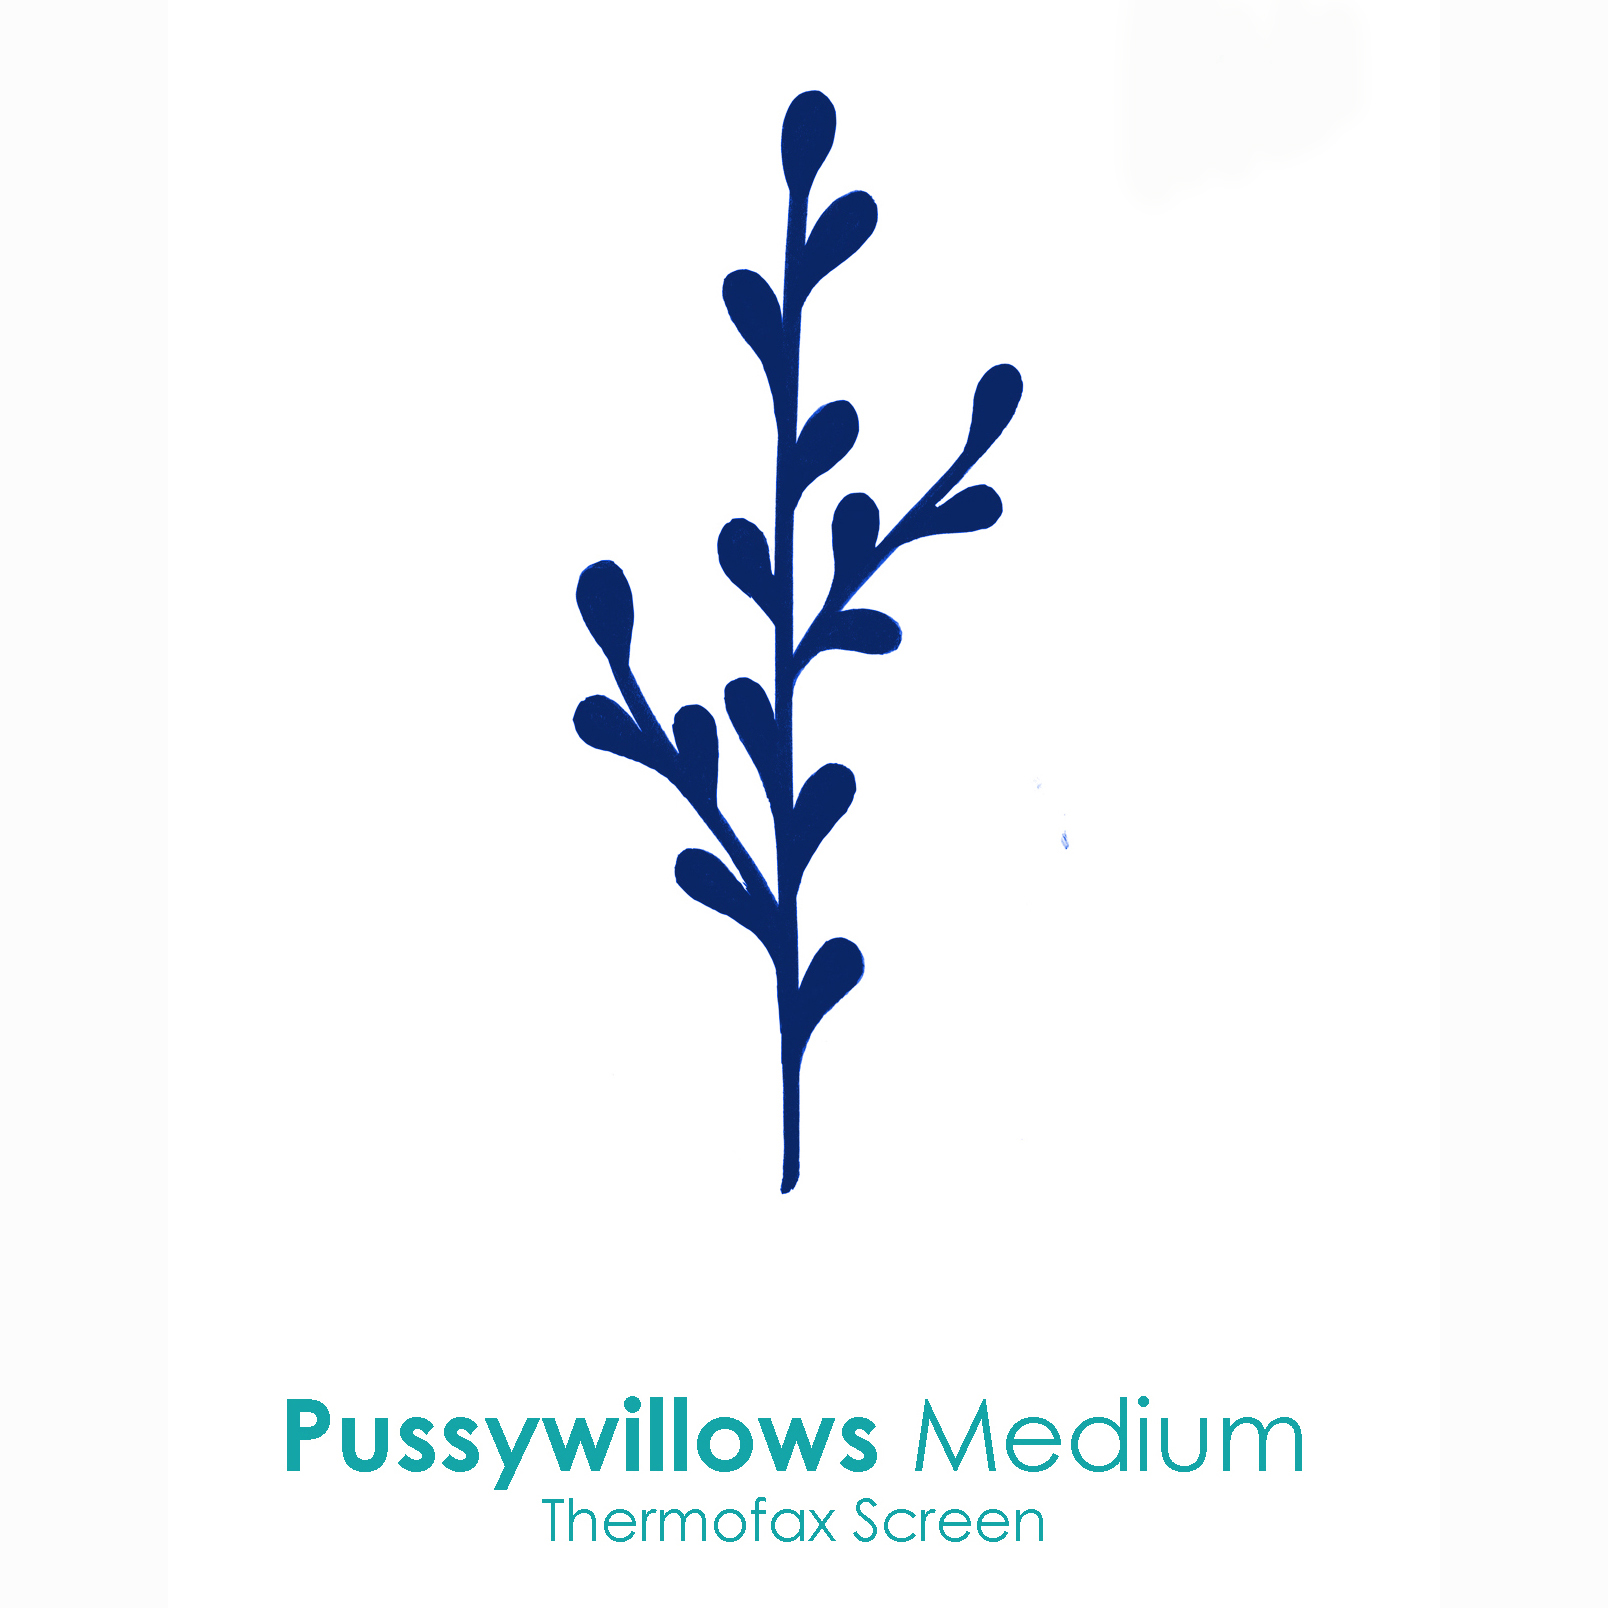 Pussywillows thermofax screen.